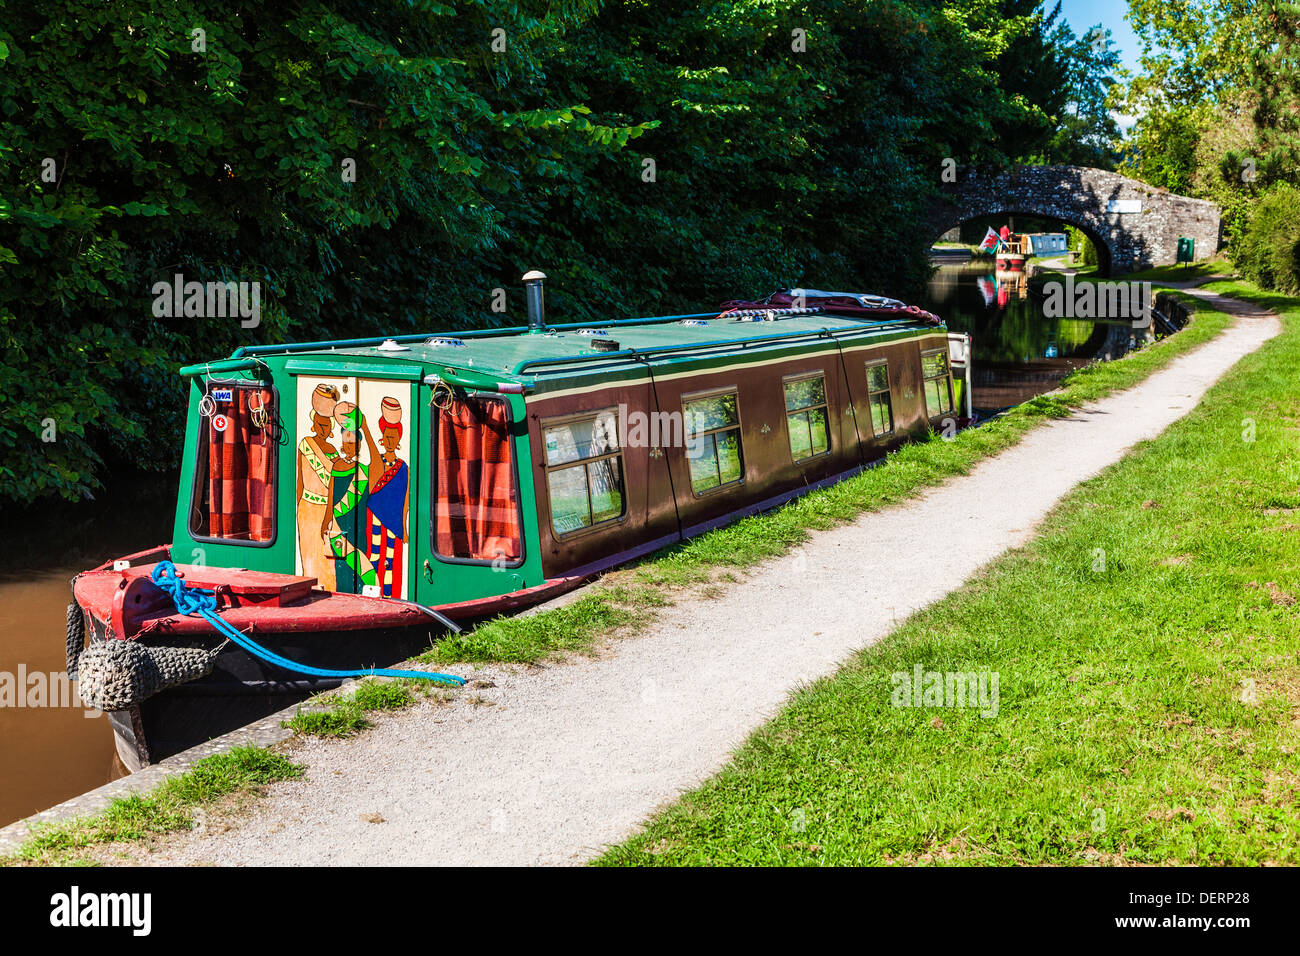 A narrowboat moored along the Monmouthshire and Brecon Canal in the Brecon Beacons National park near Pencelli. - Stock Image